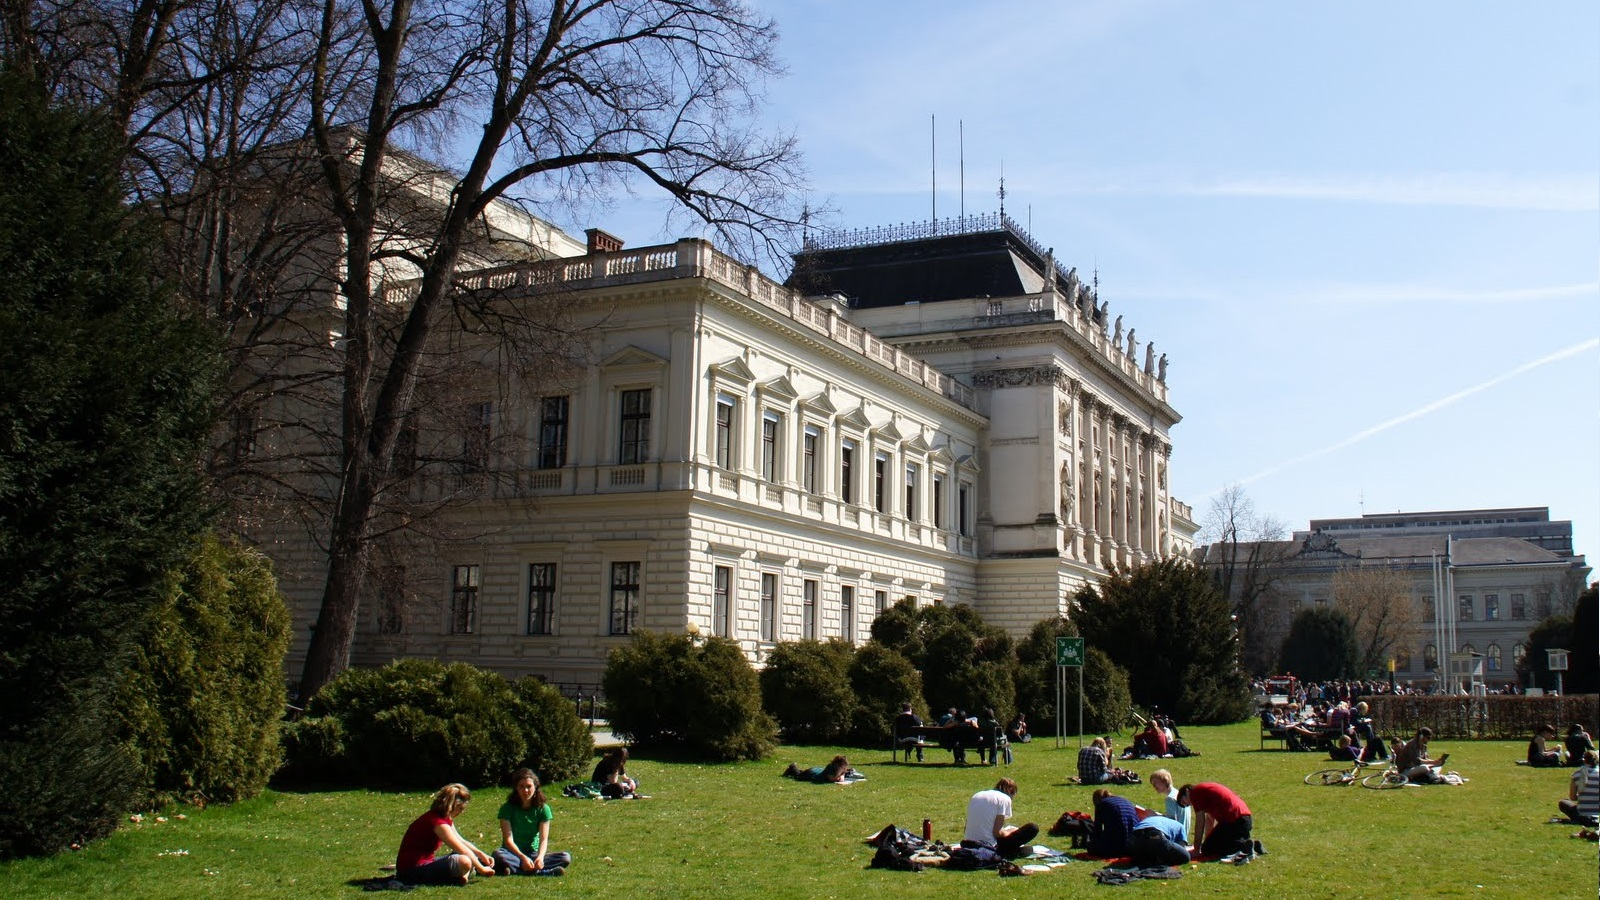 The University of Graz